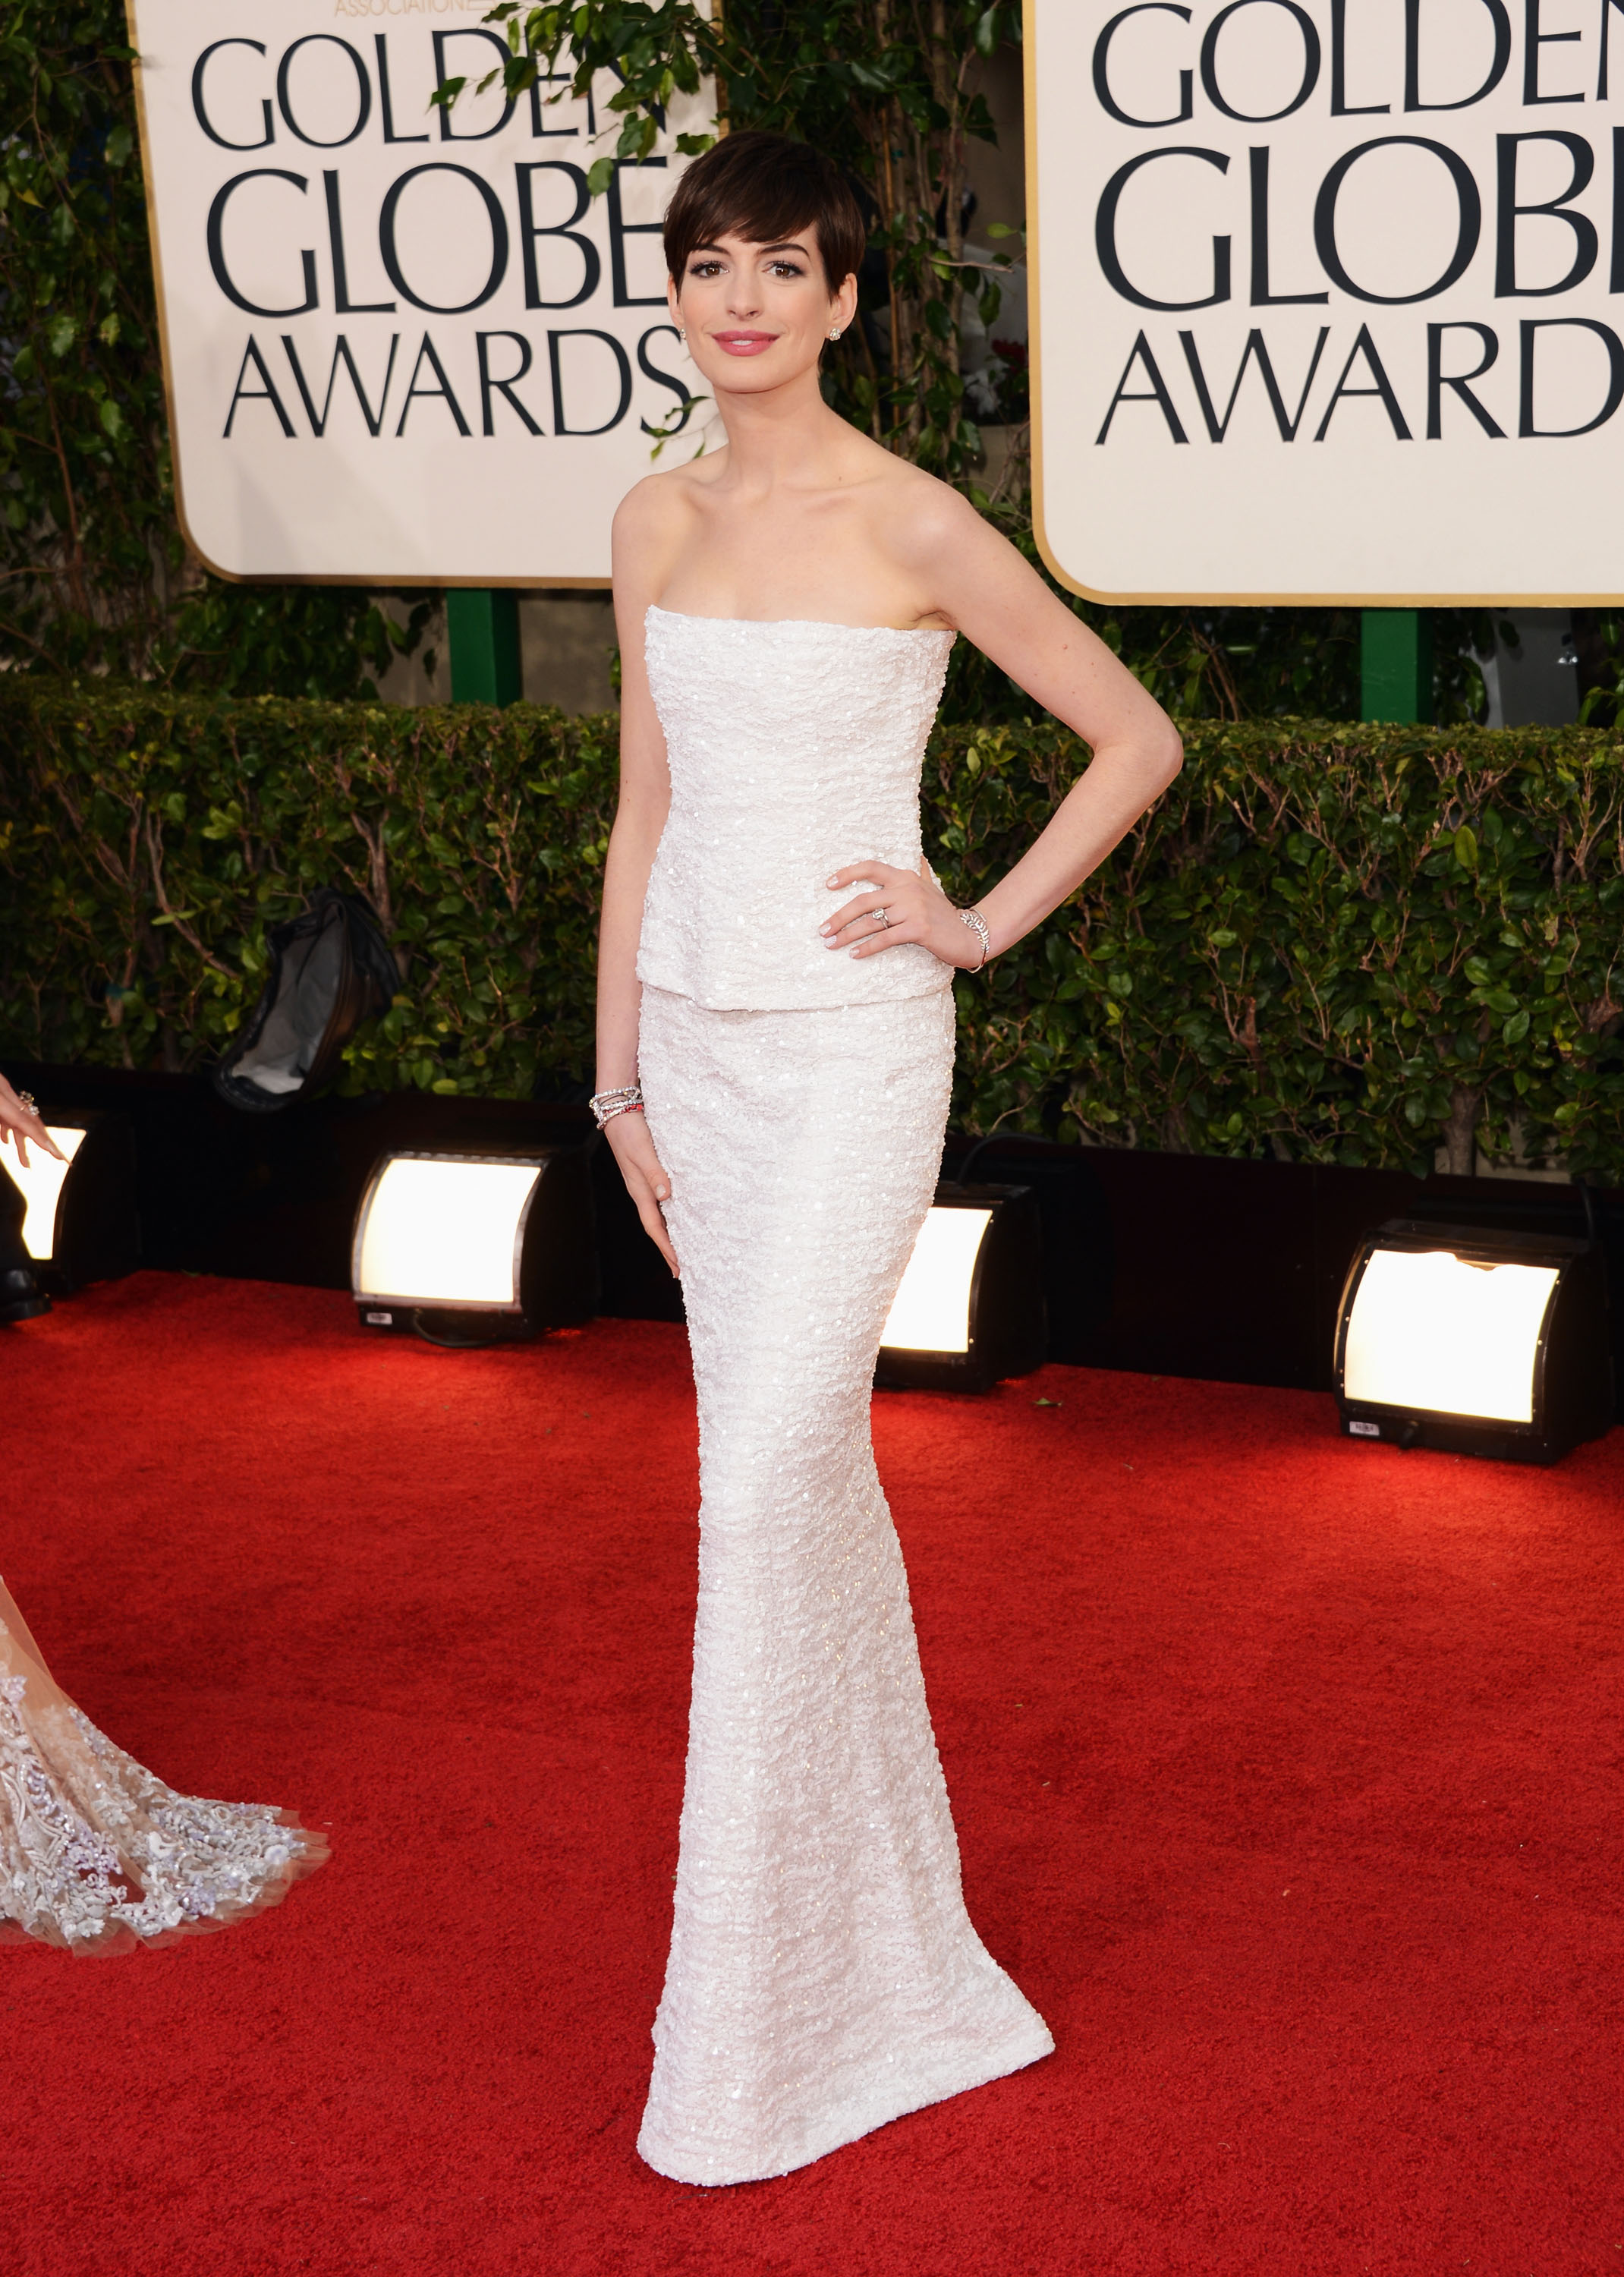 Golden Globes Well Played, Anne Hathaway